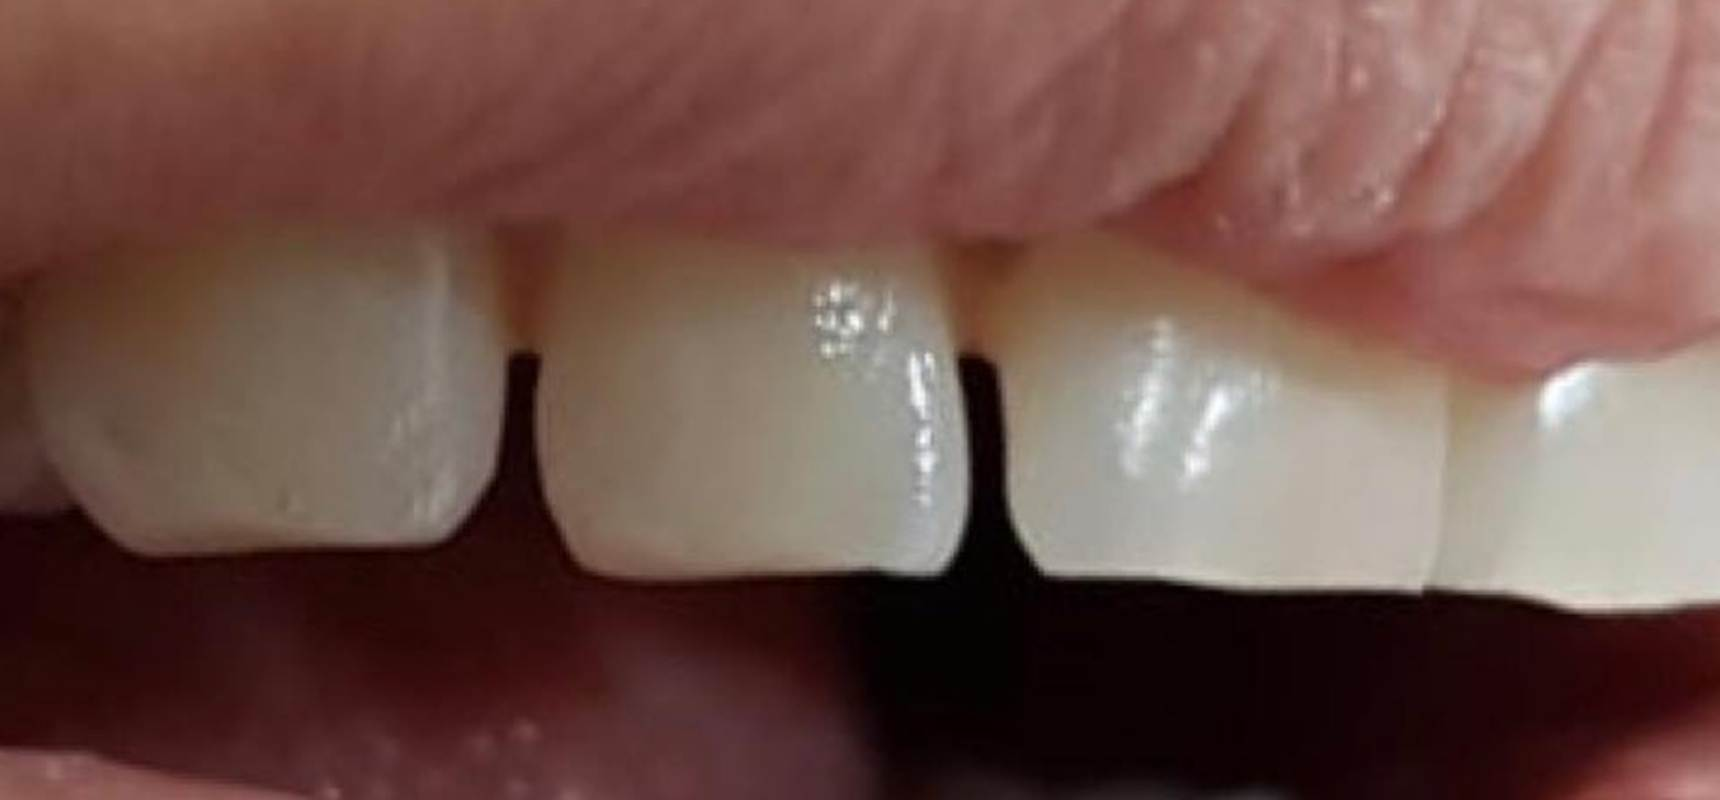 Before-Cosmetic filling of a chipped tooth